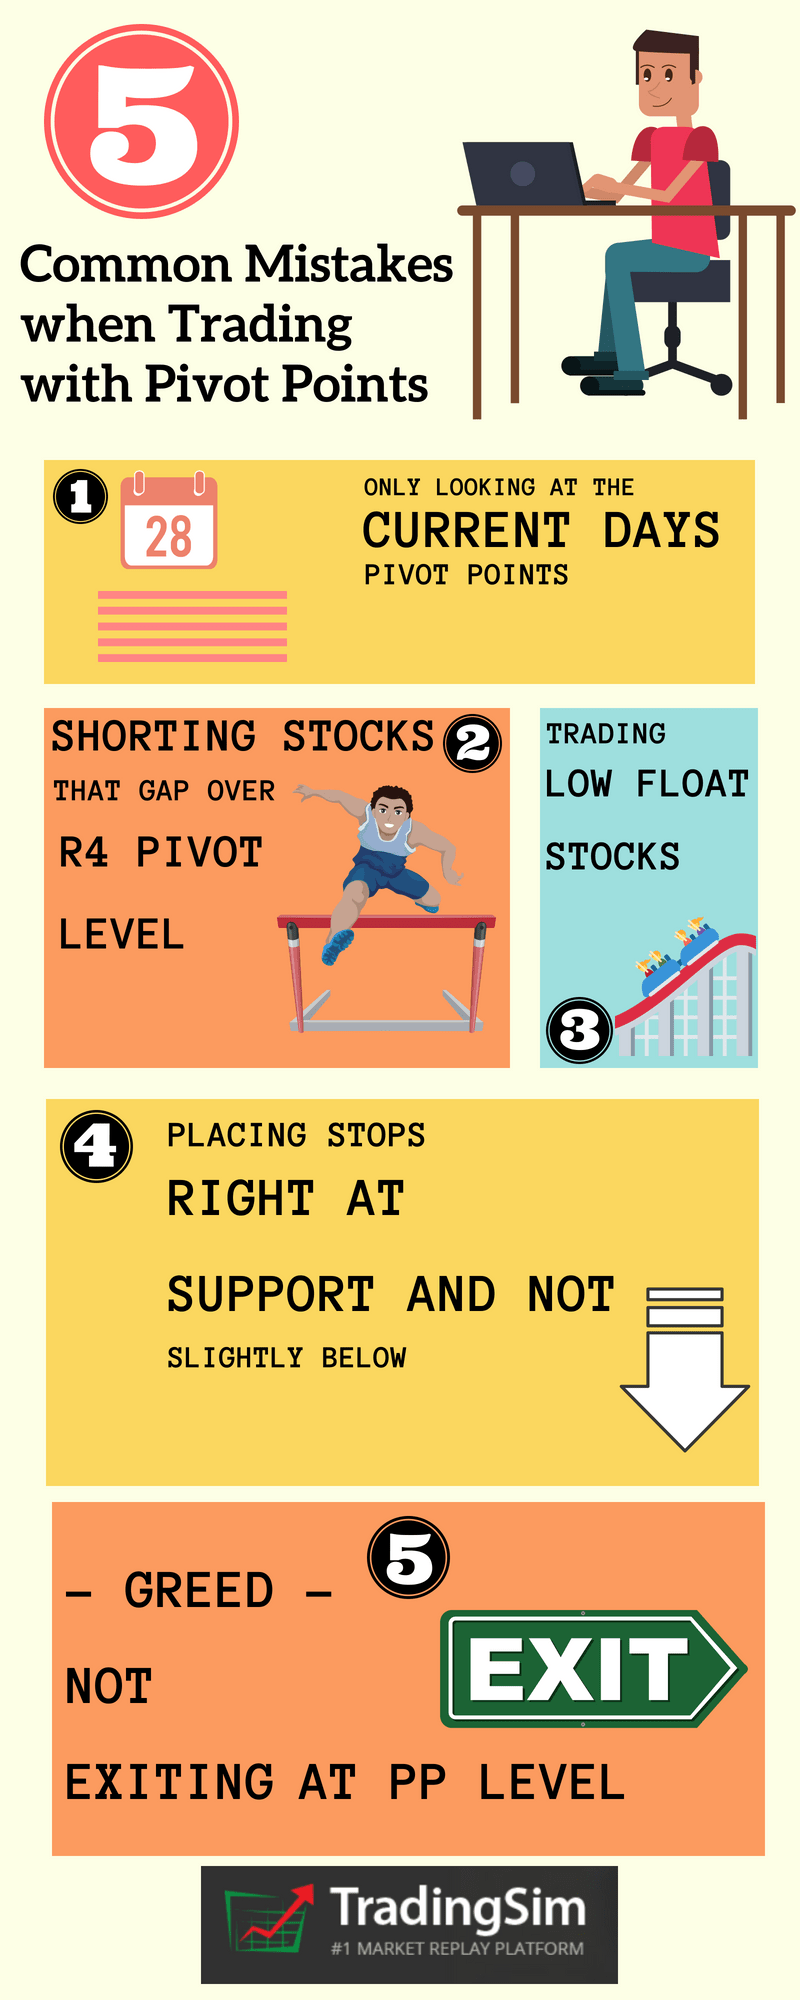 Pivot Points - 5 Common Mistakes